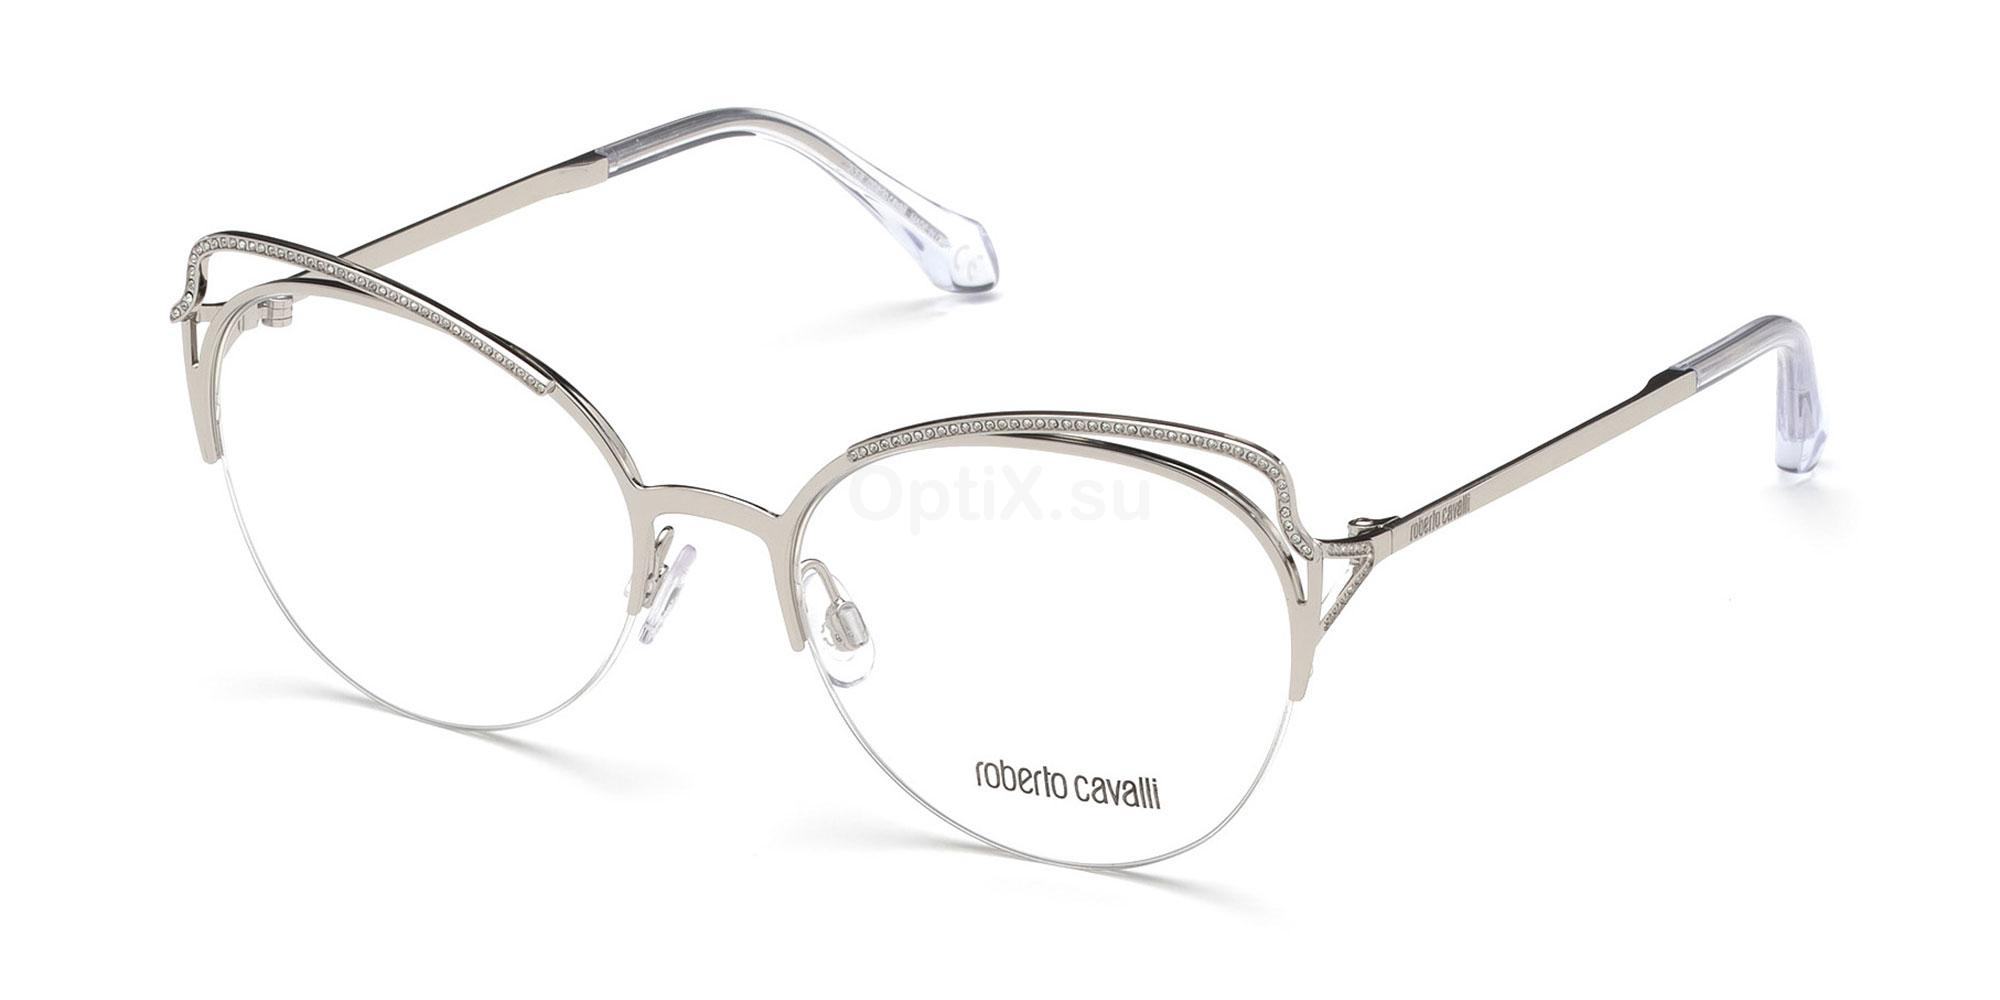 016 RC5076 Glasses, Roberto Cavalli